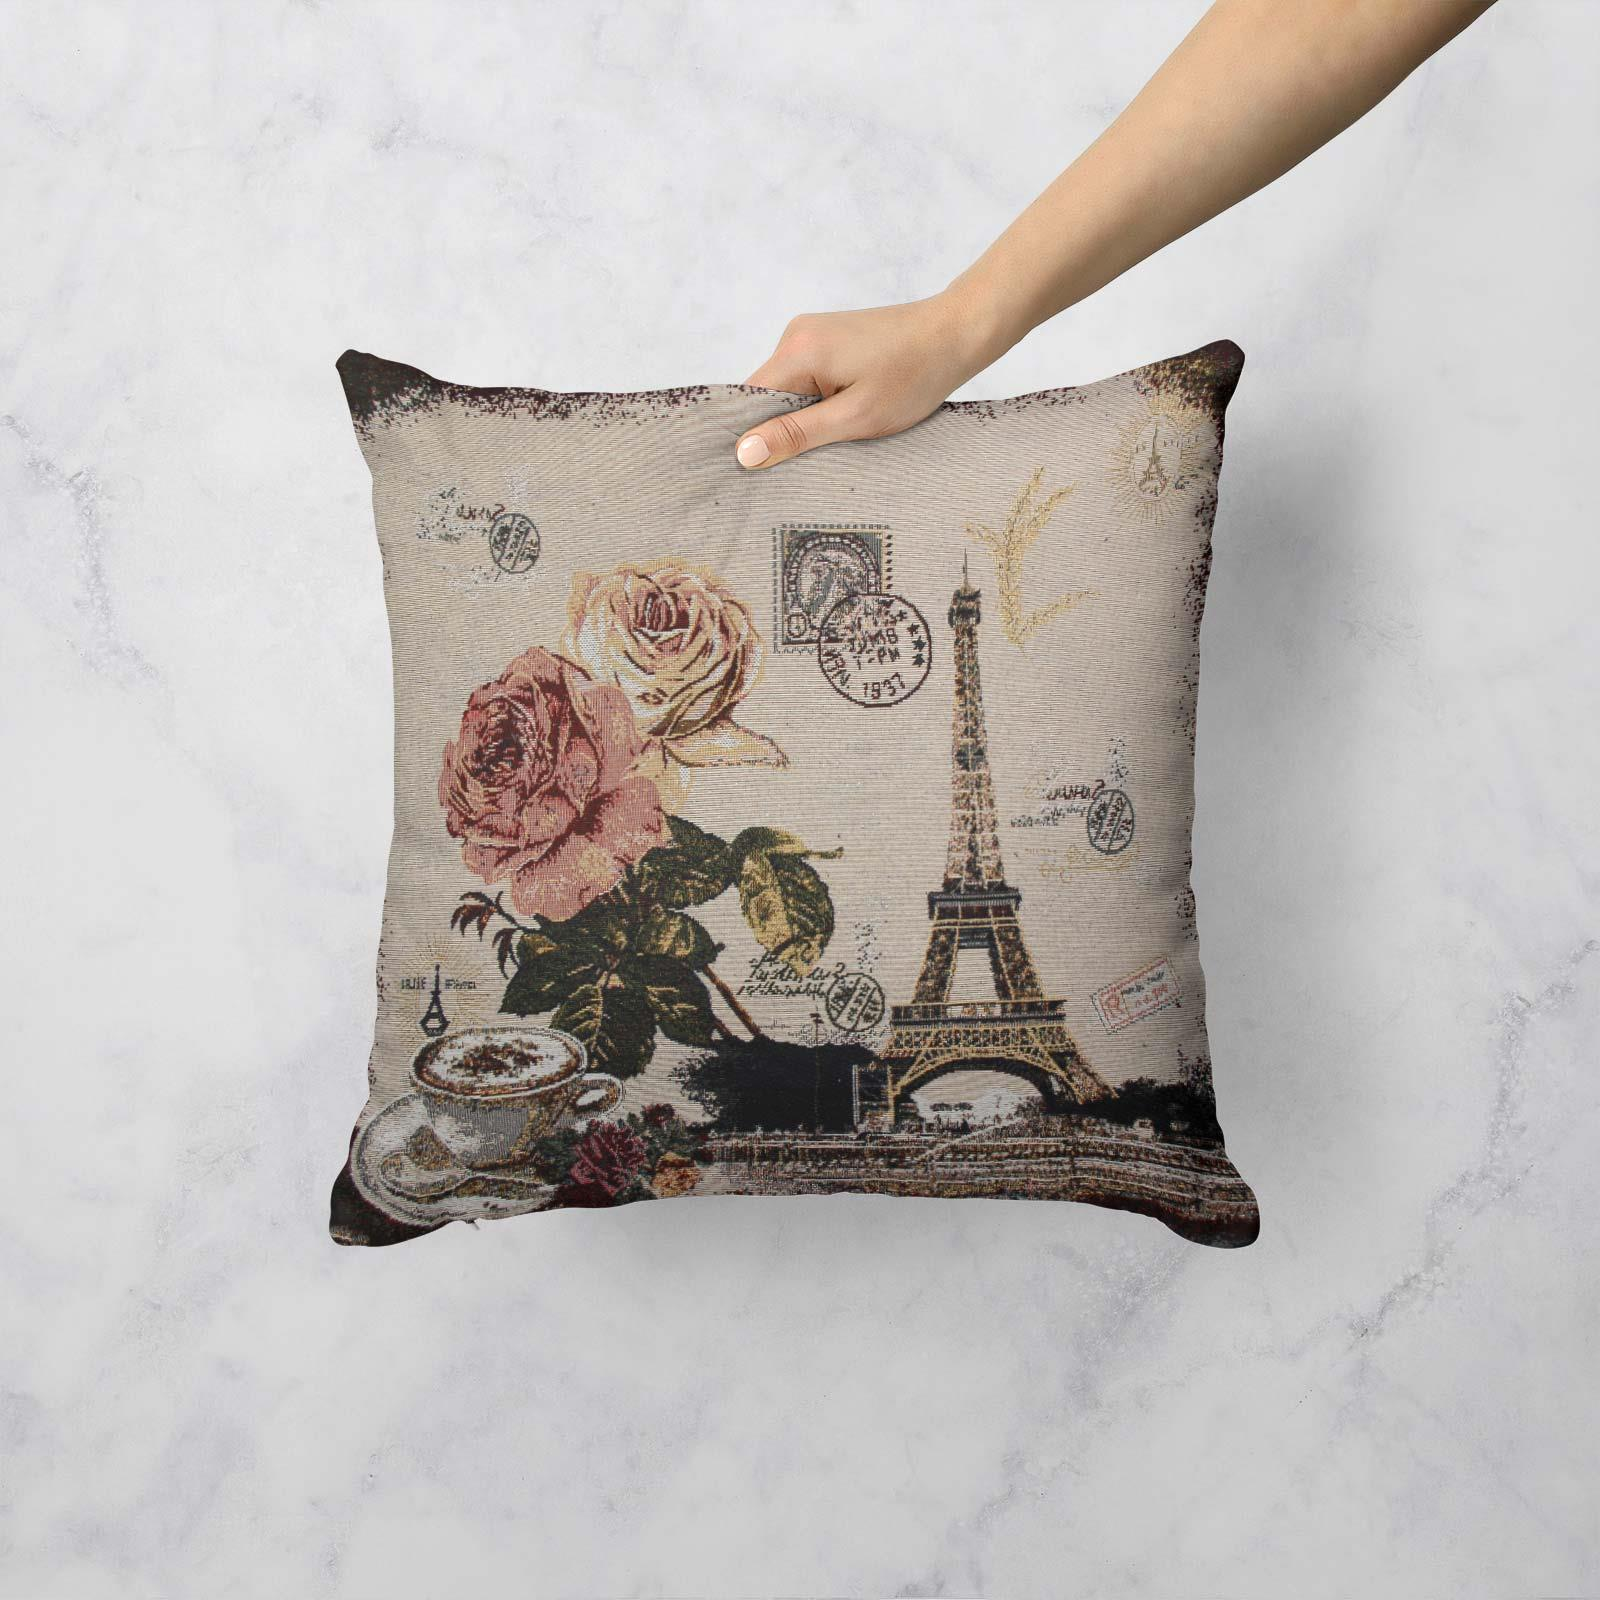 Tapestry-Cushion-Covers-Vintage-Pillow-Cover-Collection-18-034-45cm-Filled-Cushions thumbnail 156